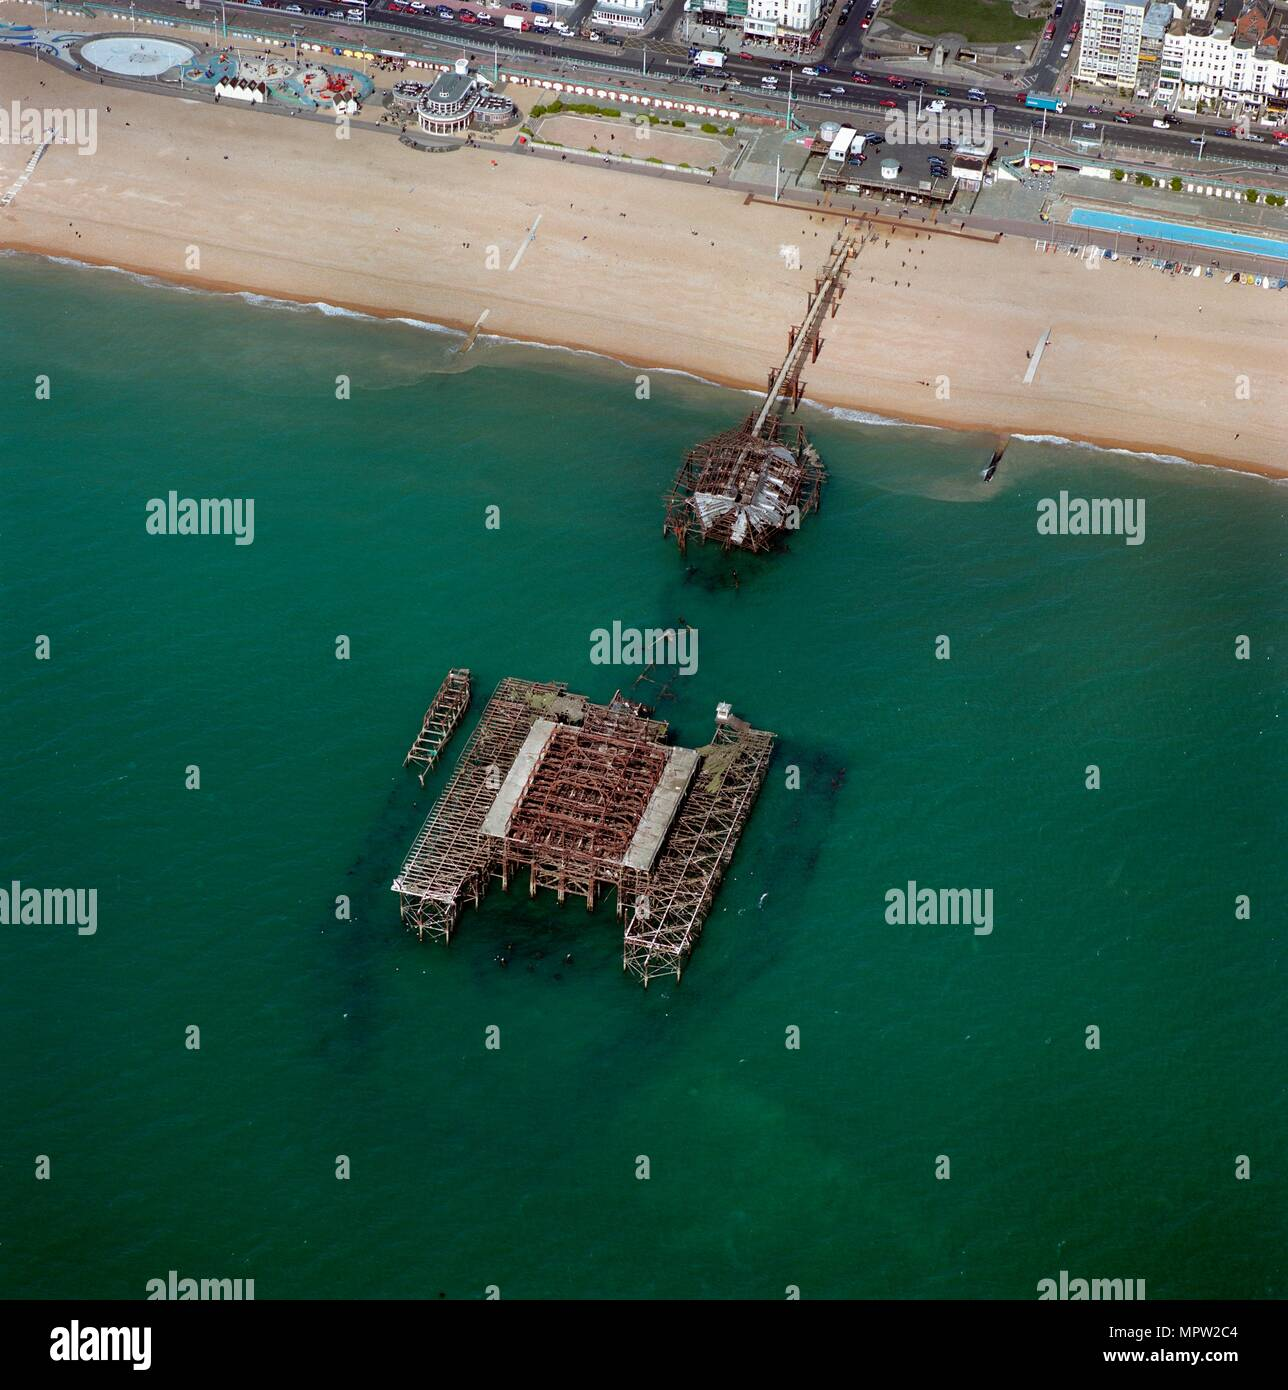 West Pier, Brighton, East Sussex. Artist: Damian Grady. - Stock Image